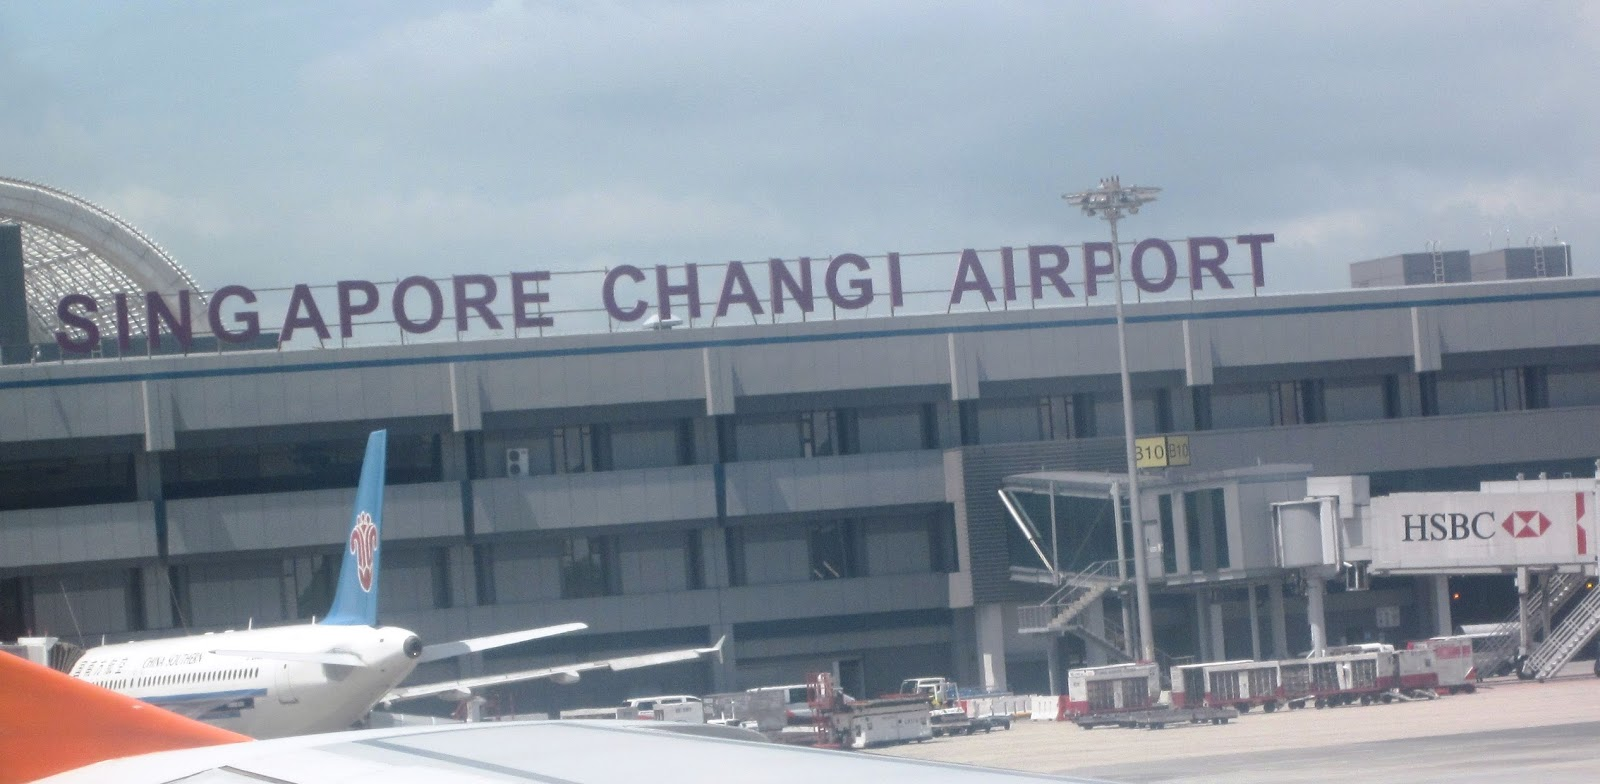 Express delivery services from Hanoi to Singapore